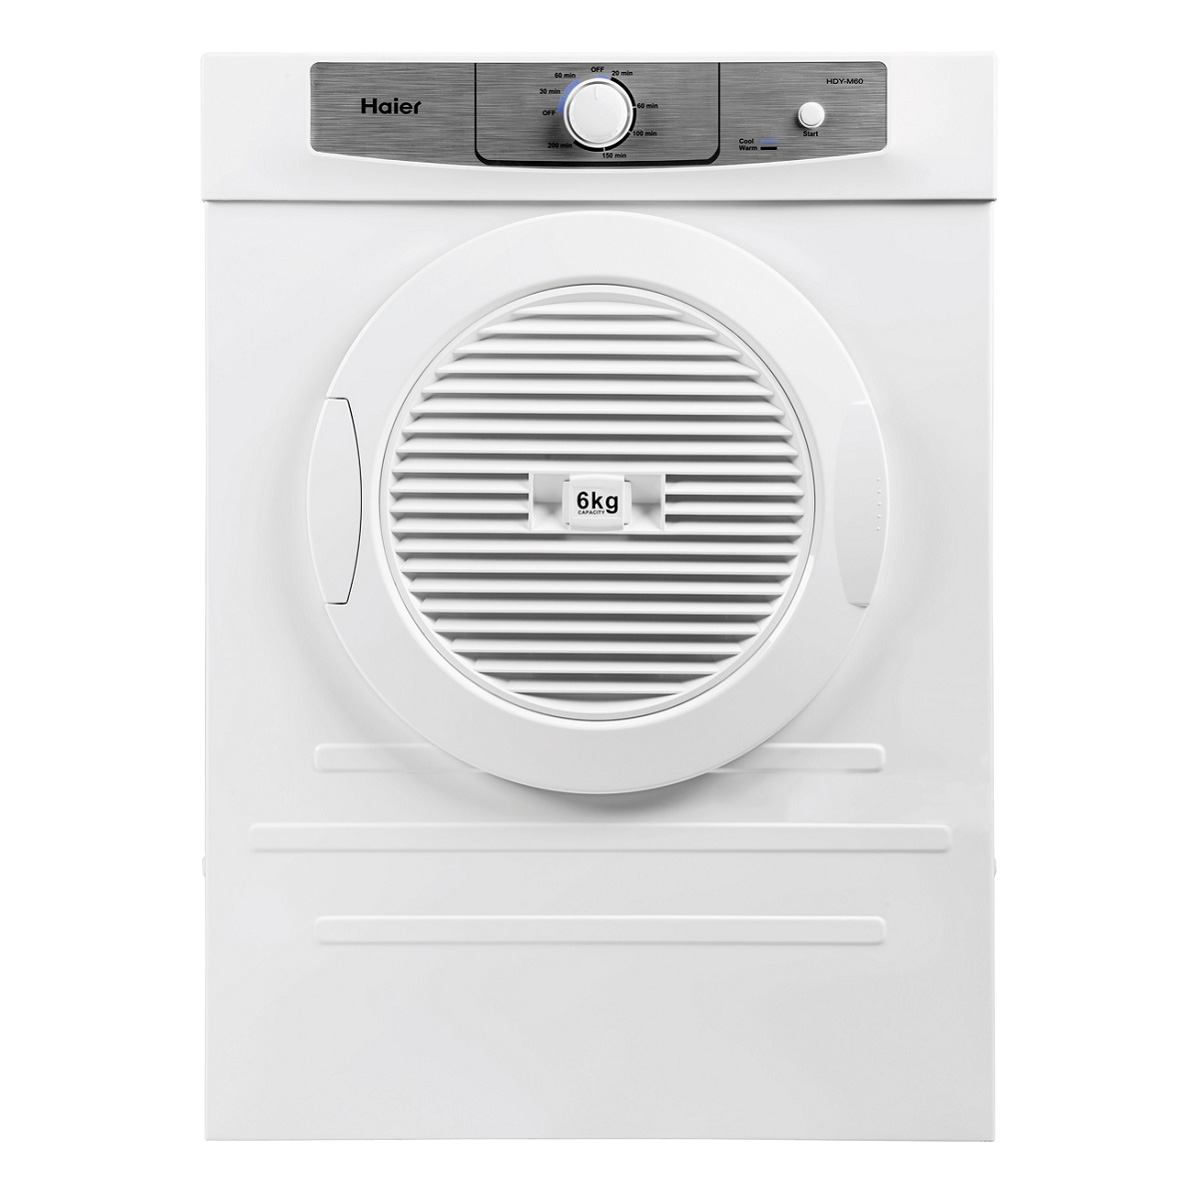 Haier Tumble Dryer HDYM60